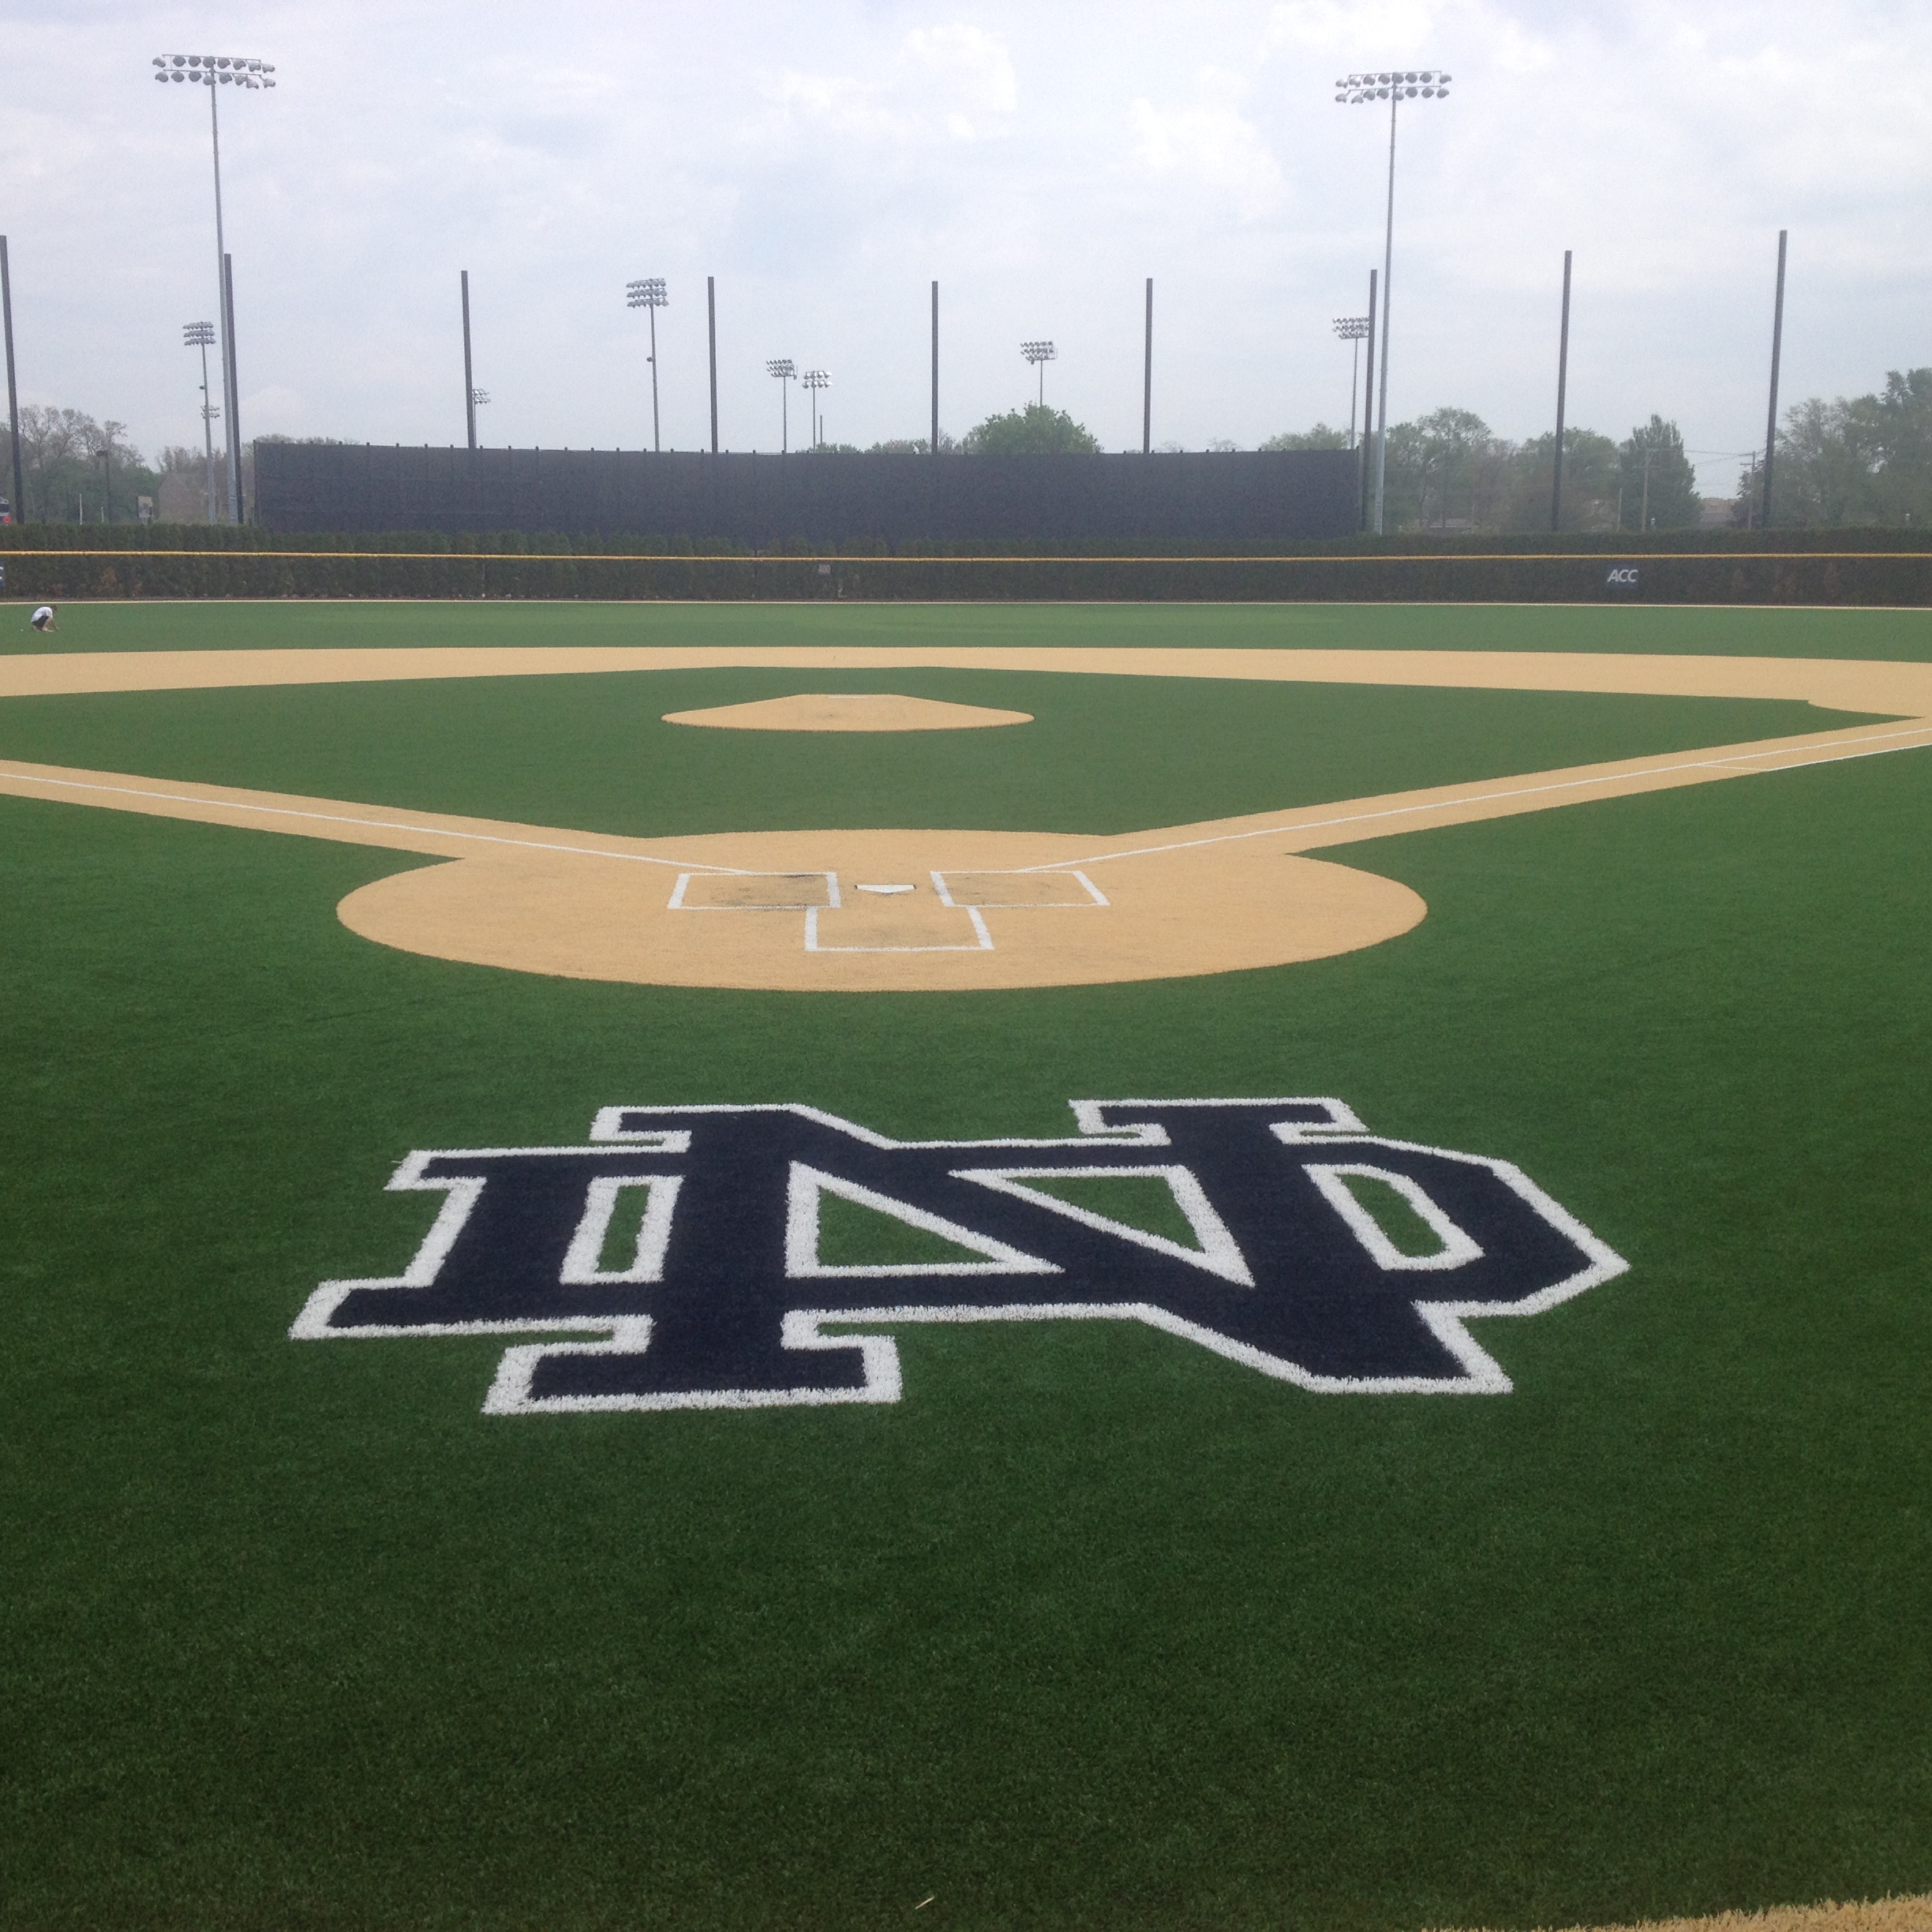 Infill Sand Artifical Turf Baseball Field